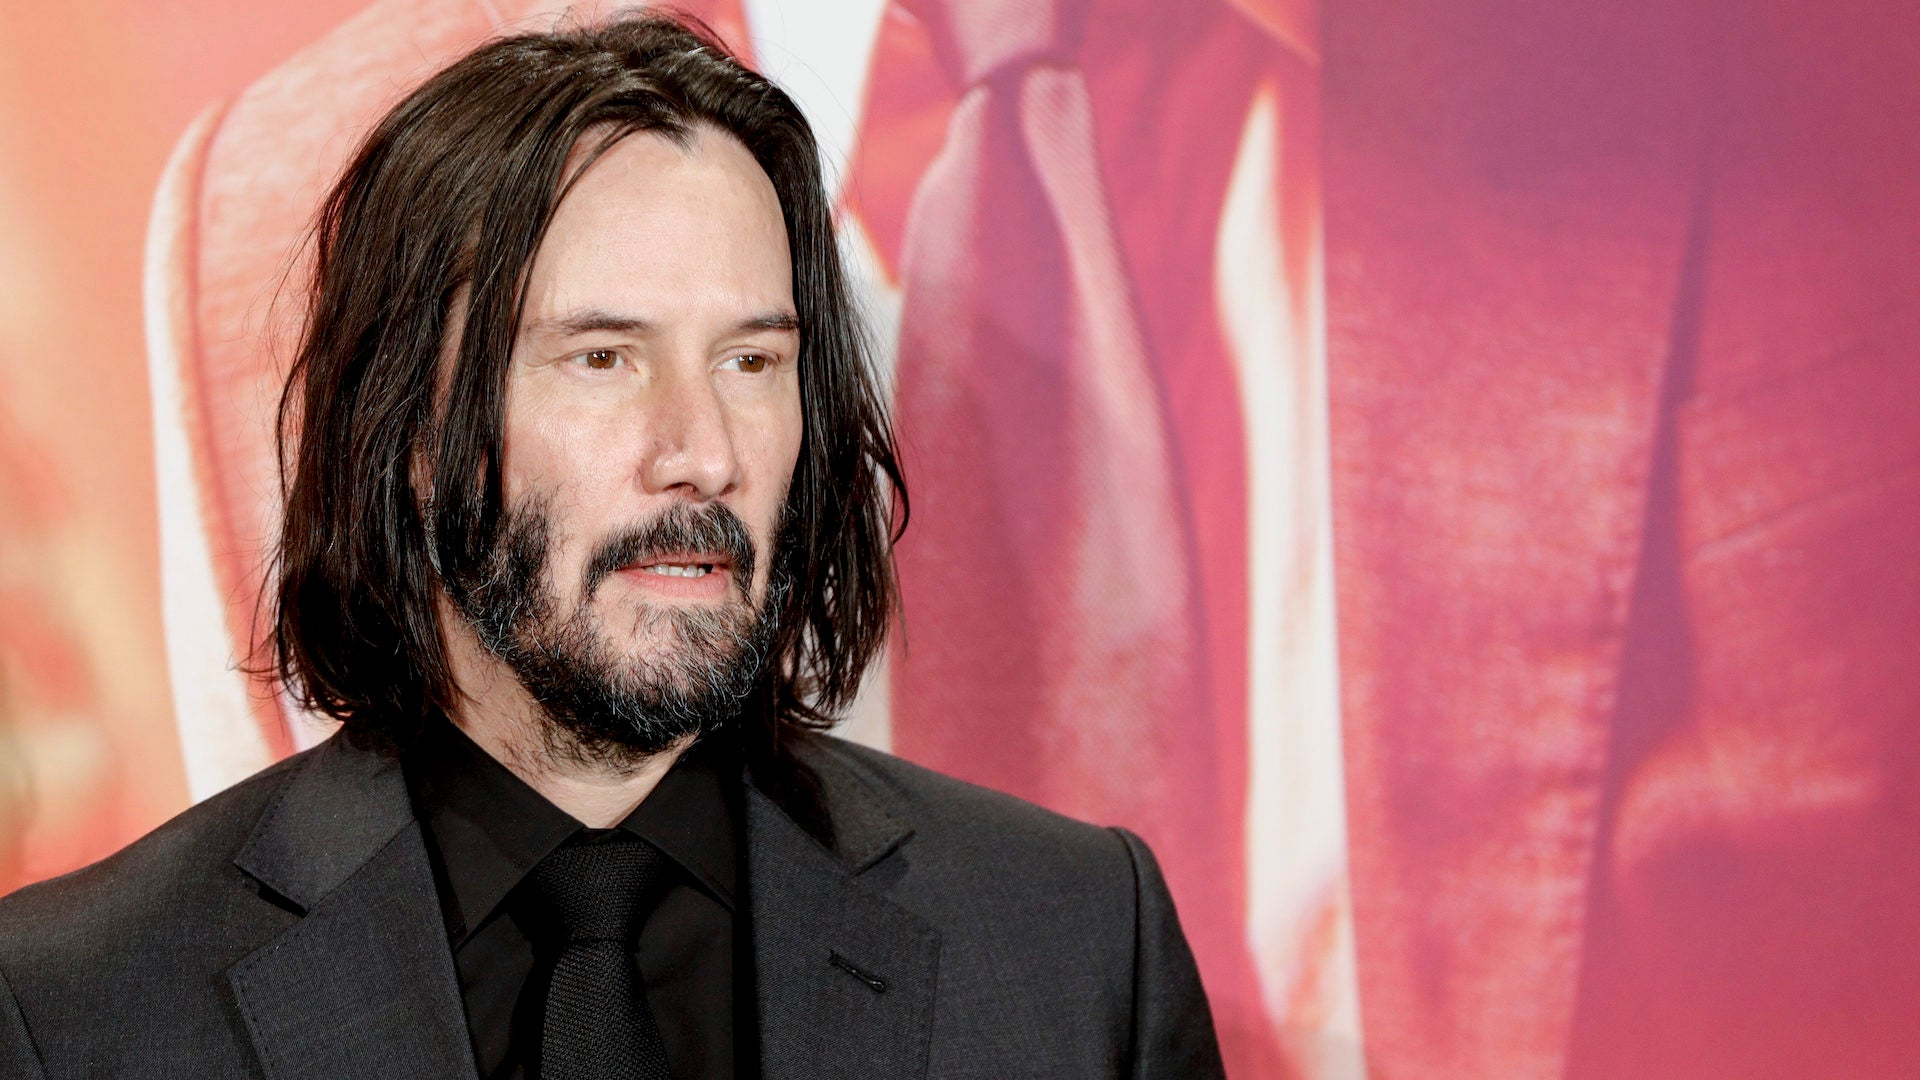 keanu reeves is a proud person of color, but doesn't want to